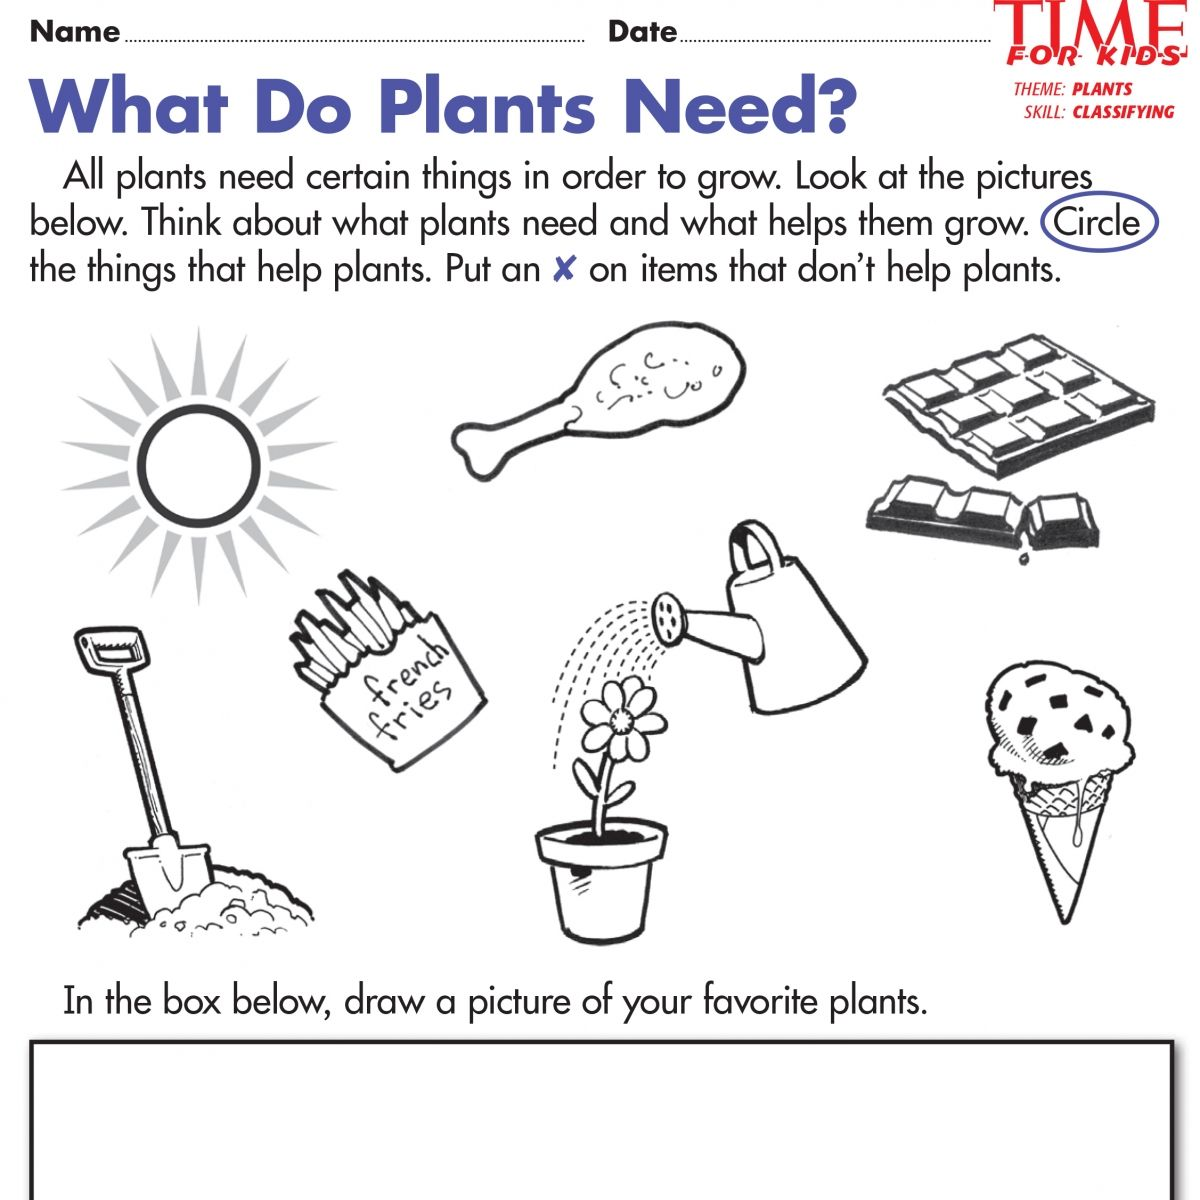 hight resolution of plant worksheets for kindergarten - Google Search   Kindergarten worksheets